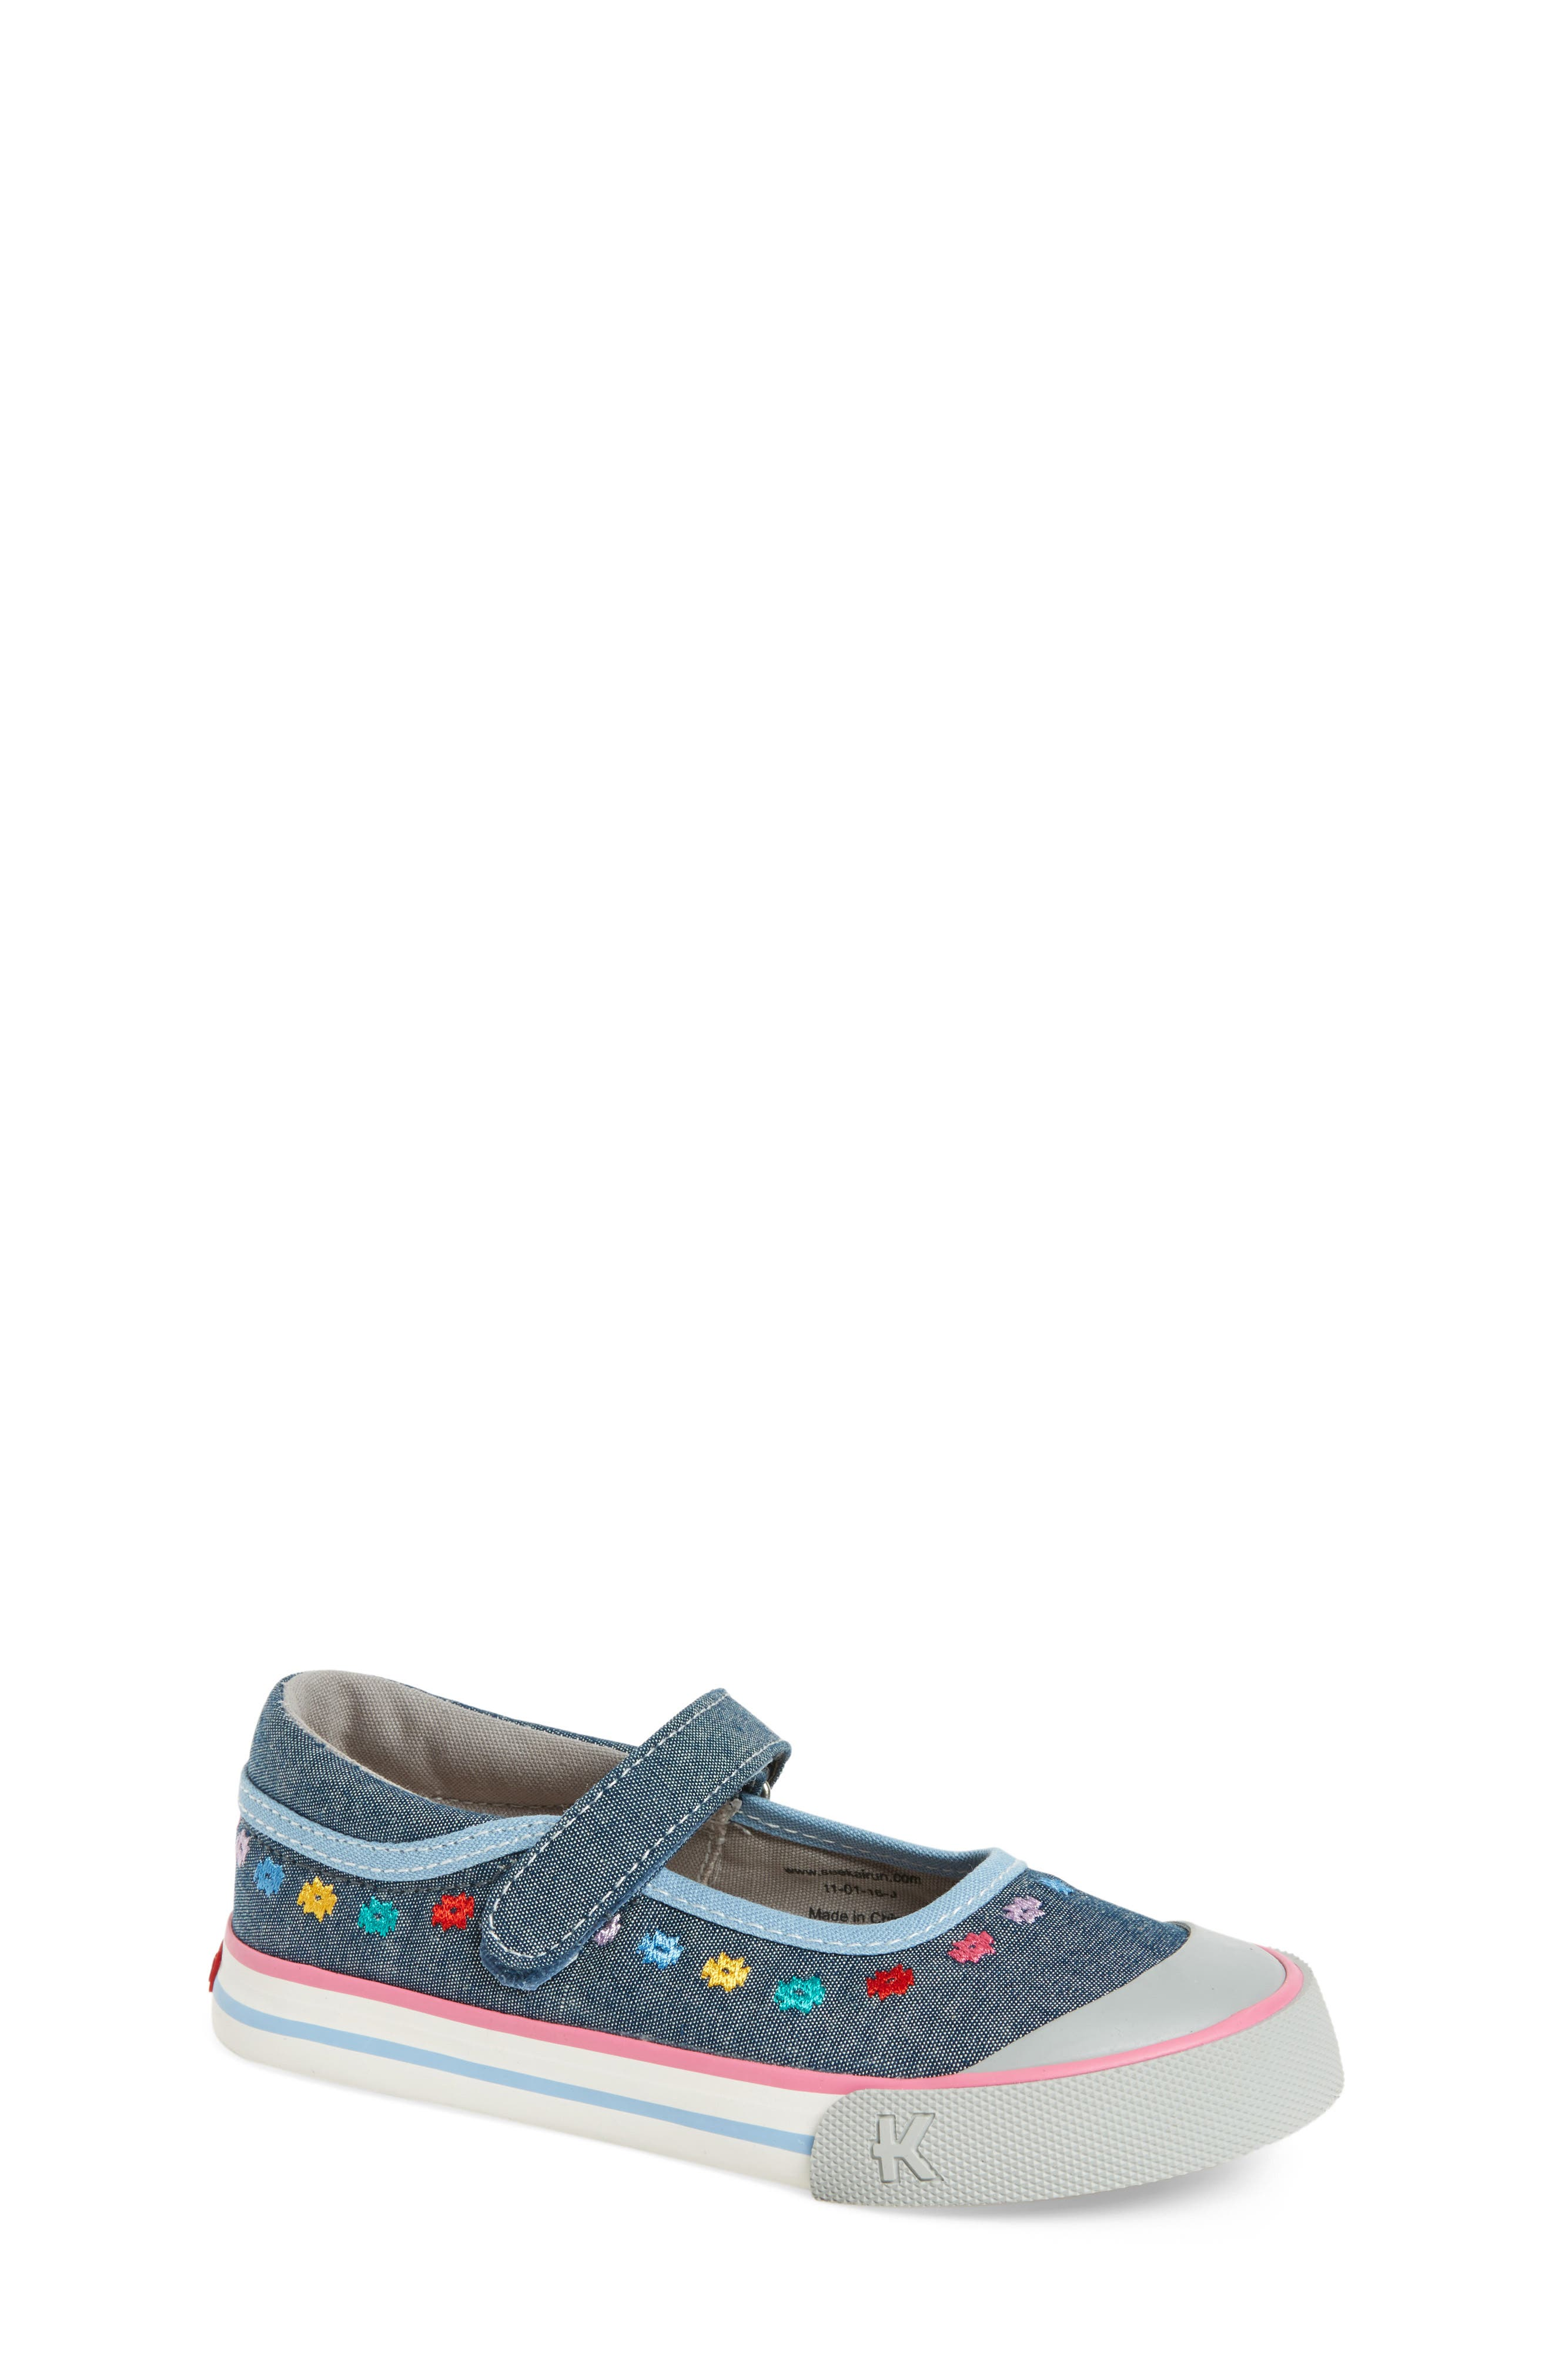 'Marie' Mary Jane Sneaker,                         Main,                         color, 400